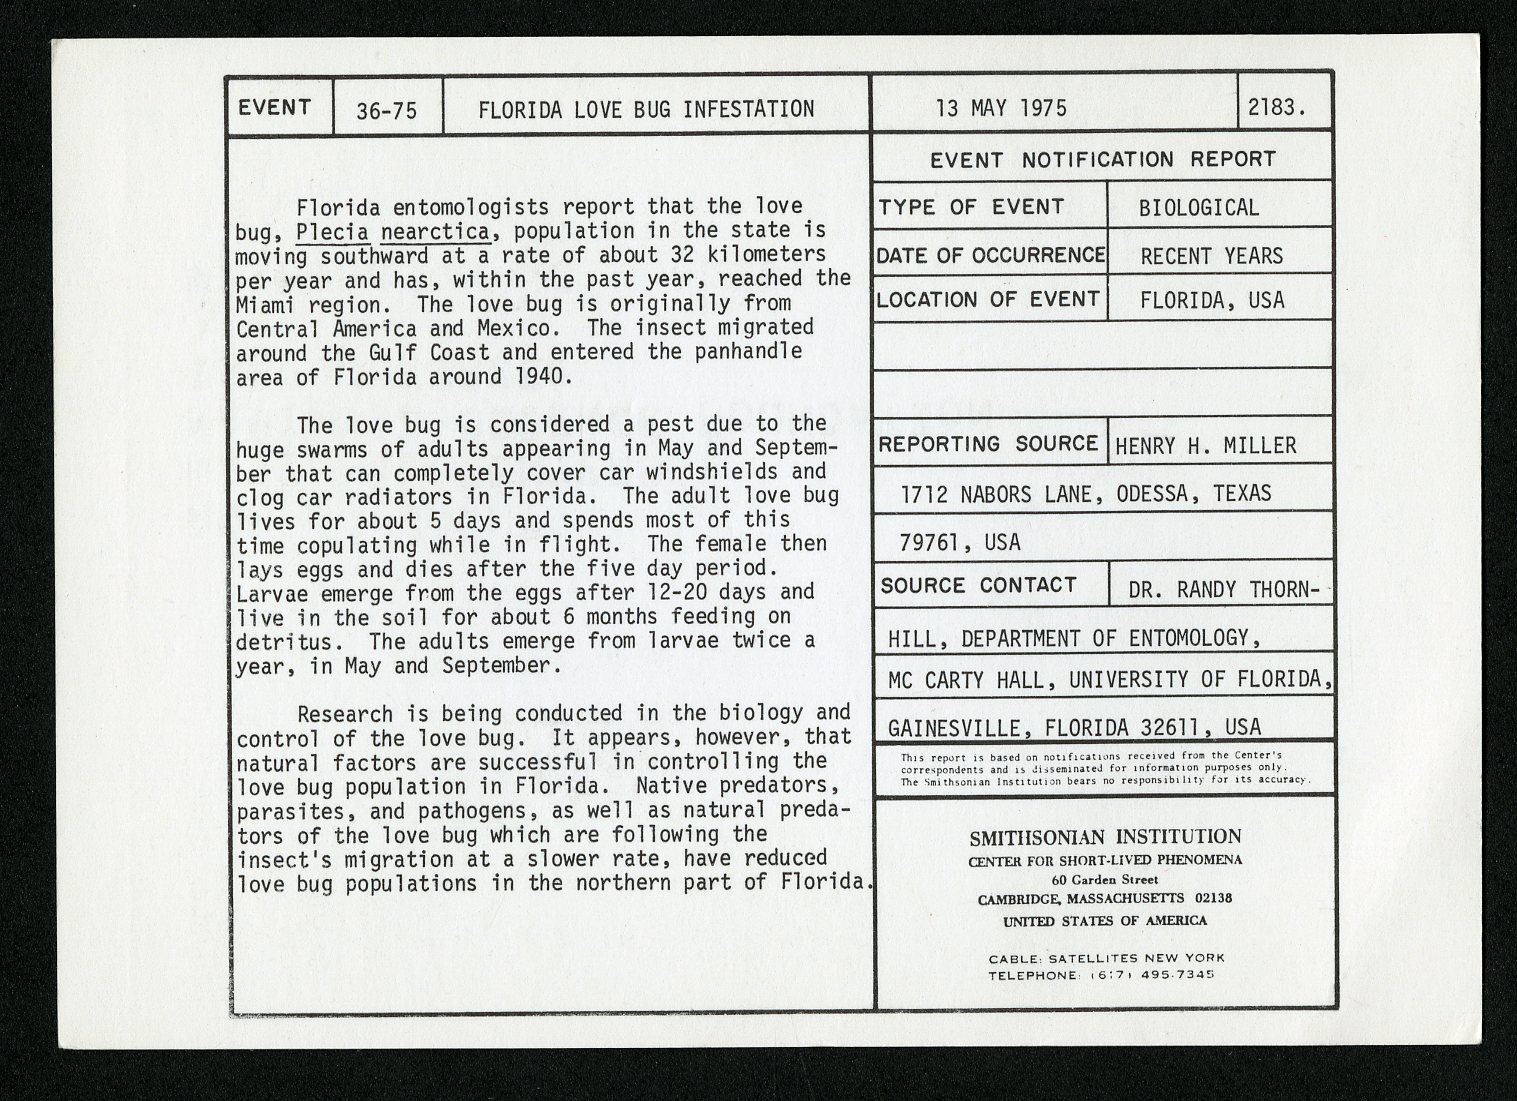 Event card -  Florida Love Bug Infestation, May 13, 1975